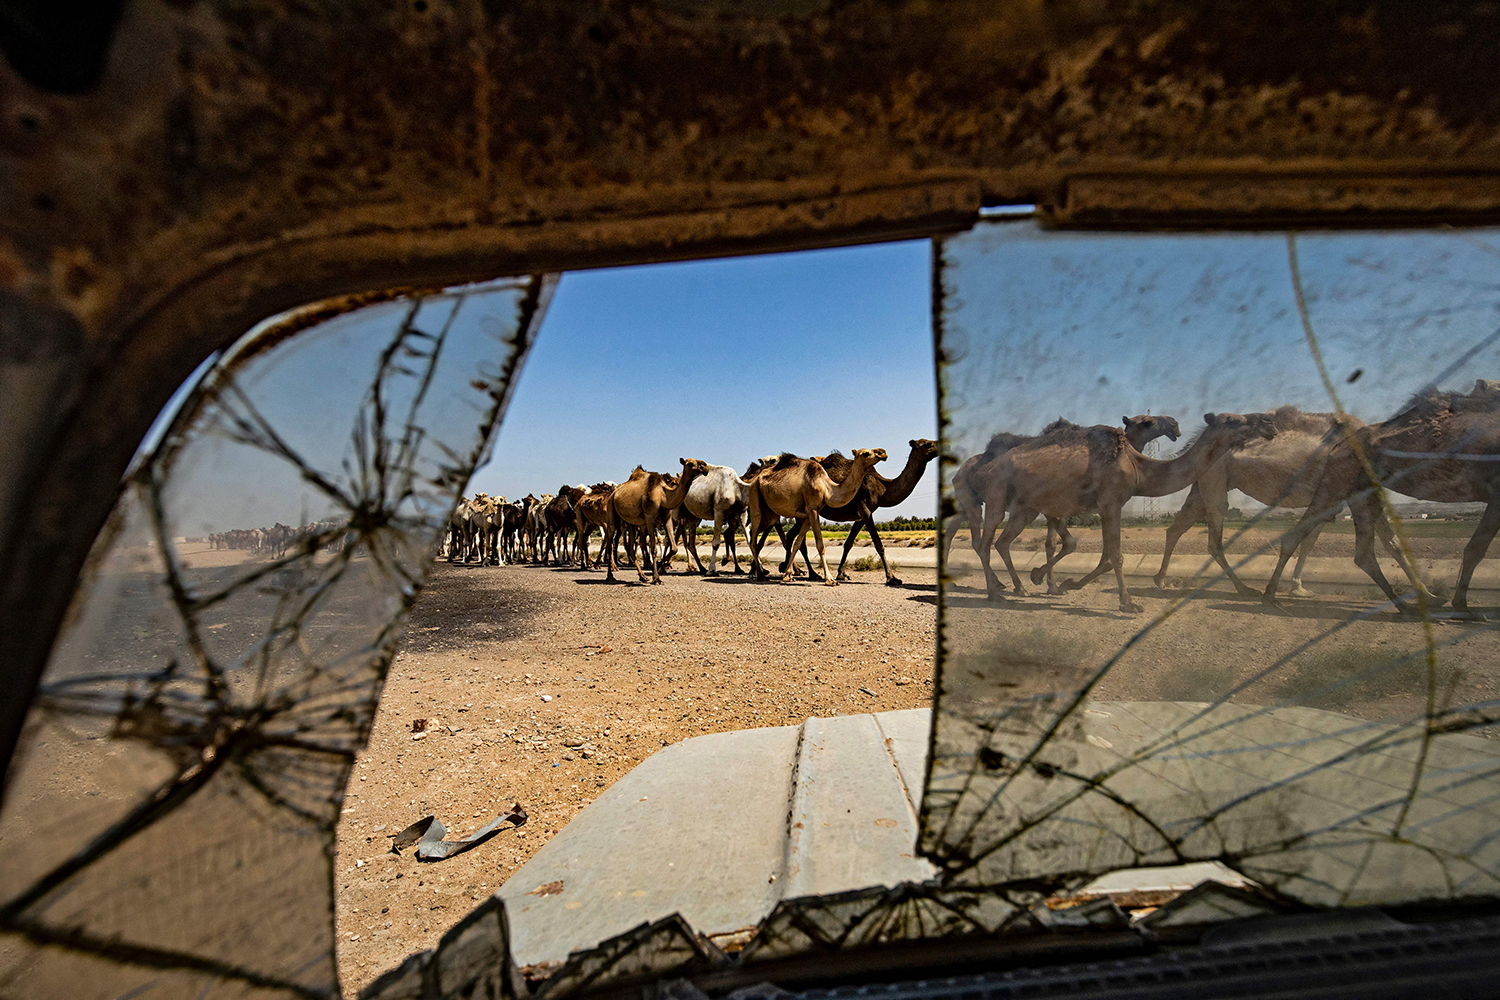 Camels walk by in Syria